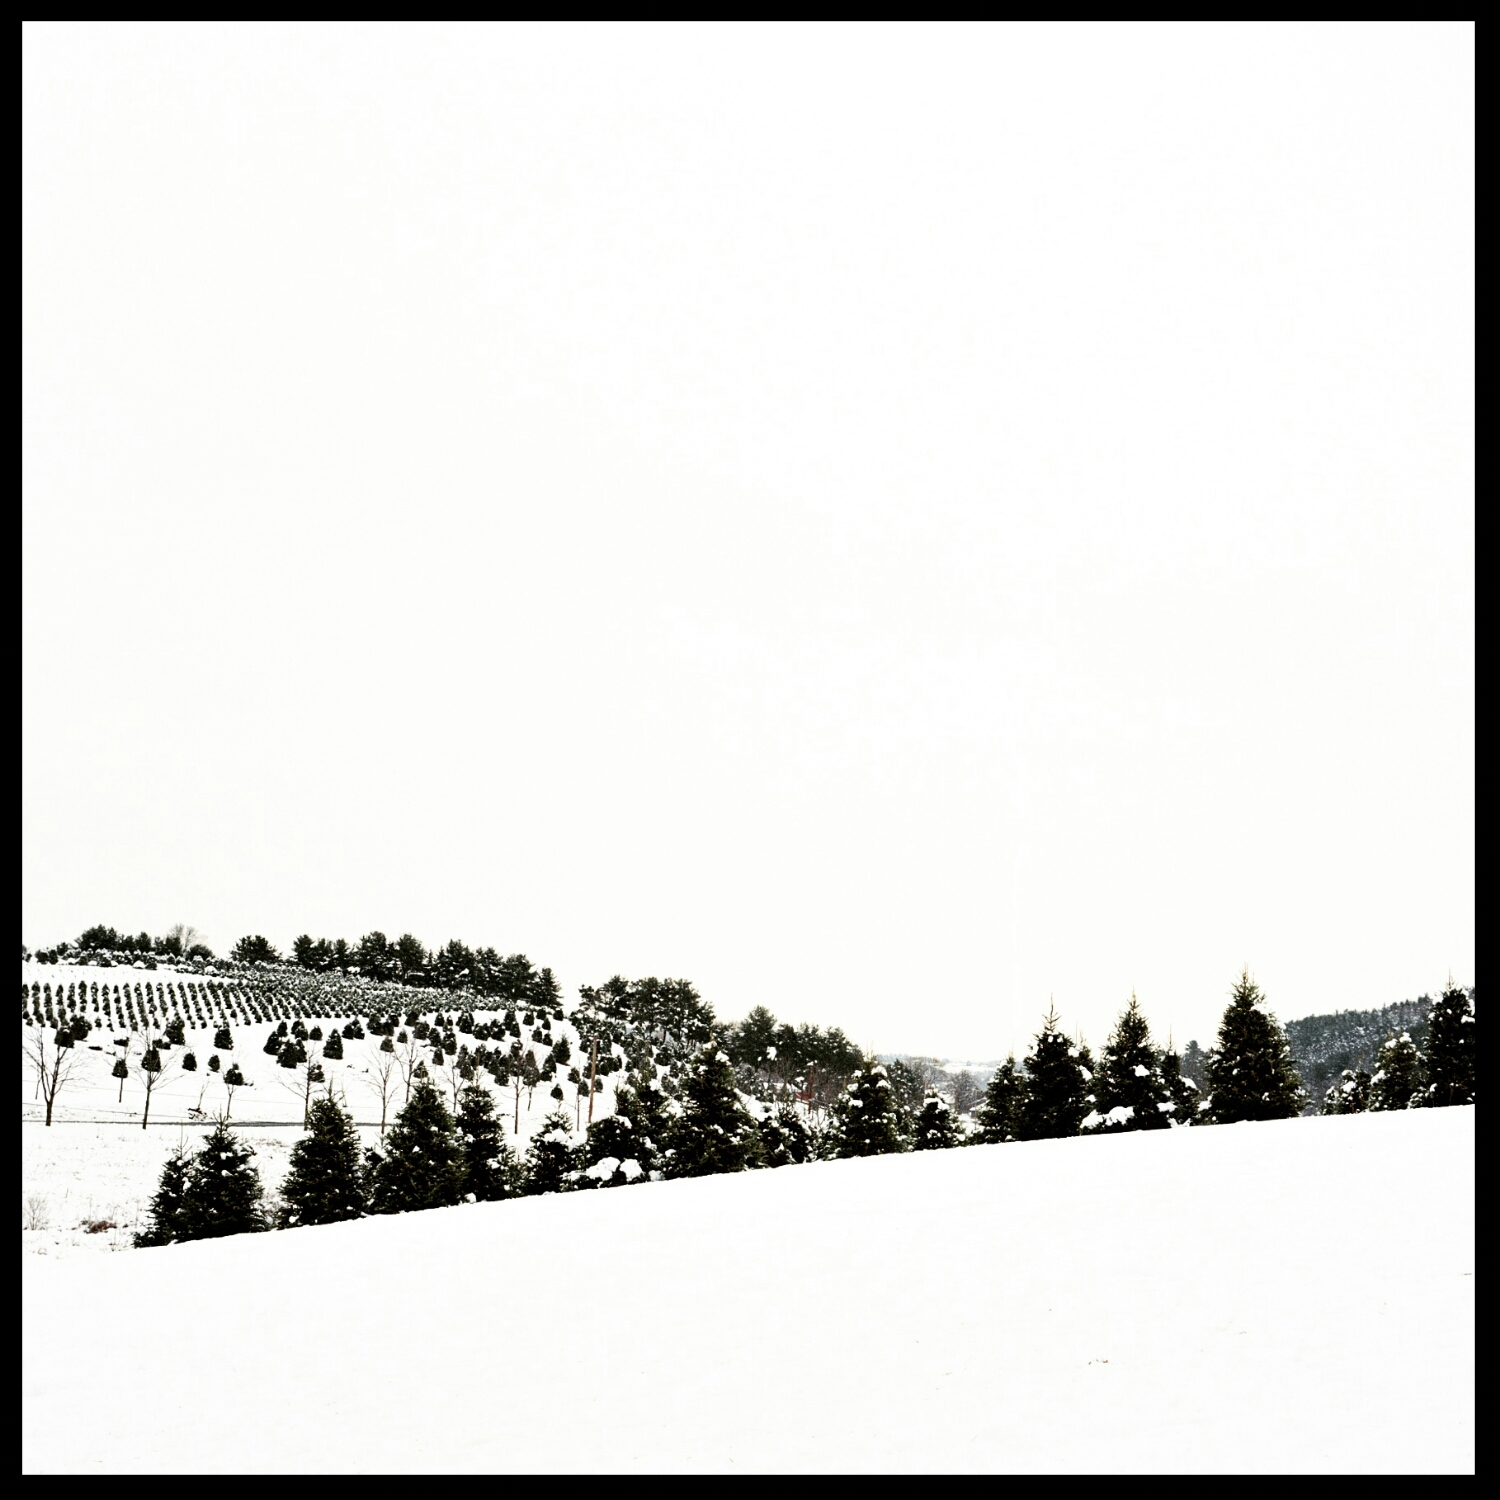 Winter Landscape- Christmas Tree Farm in Snow- Film Photography- Olivia Christina Photo